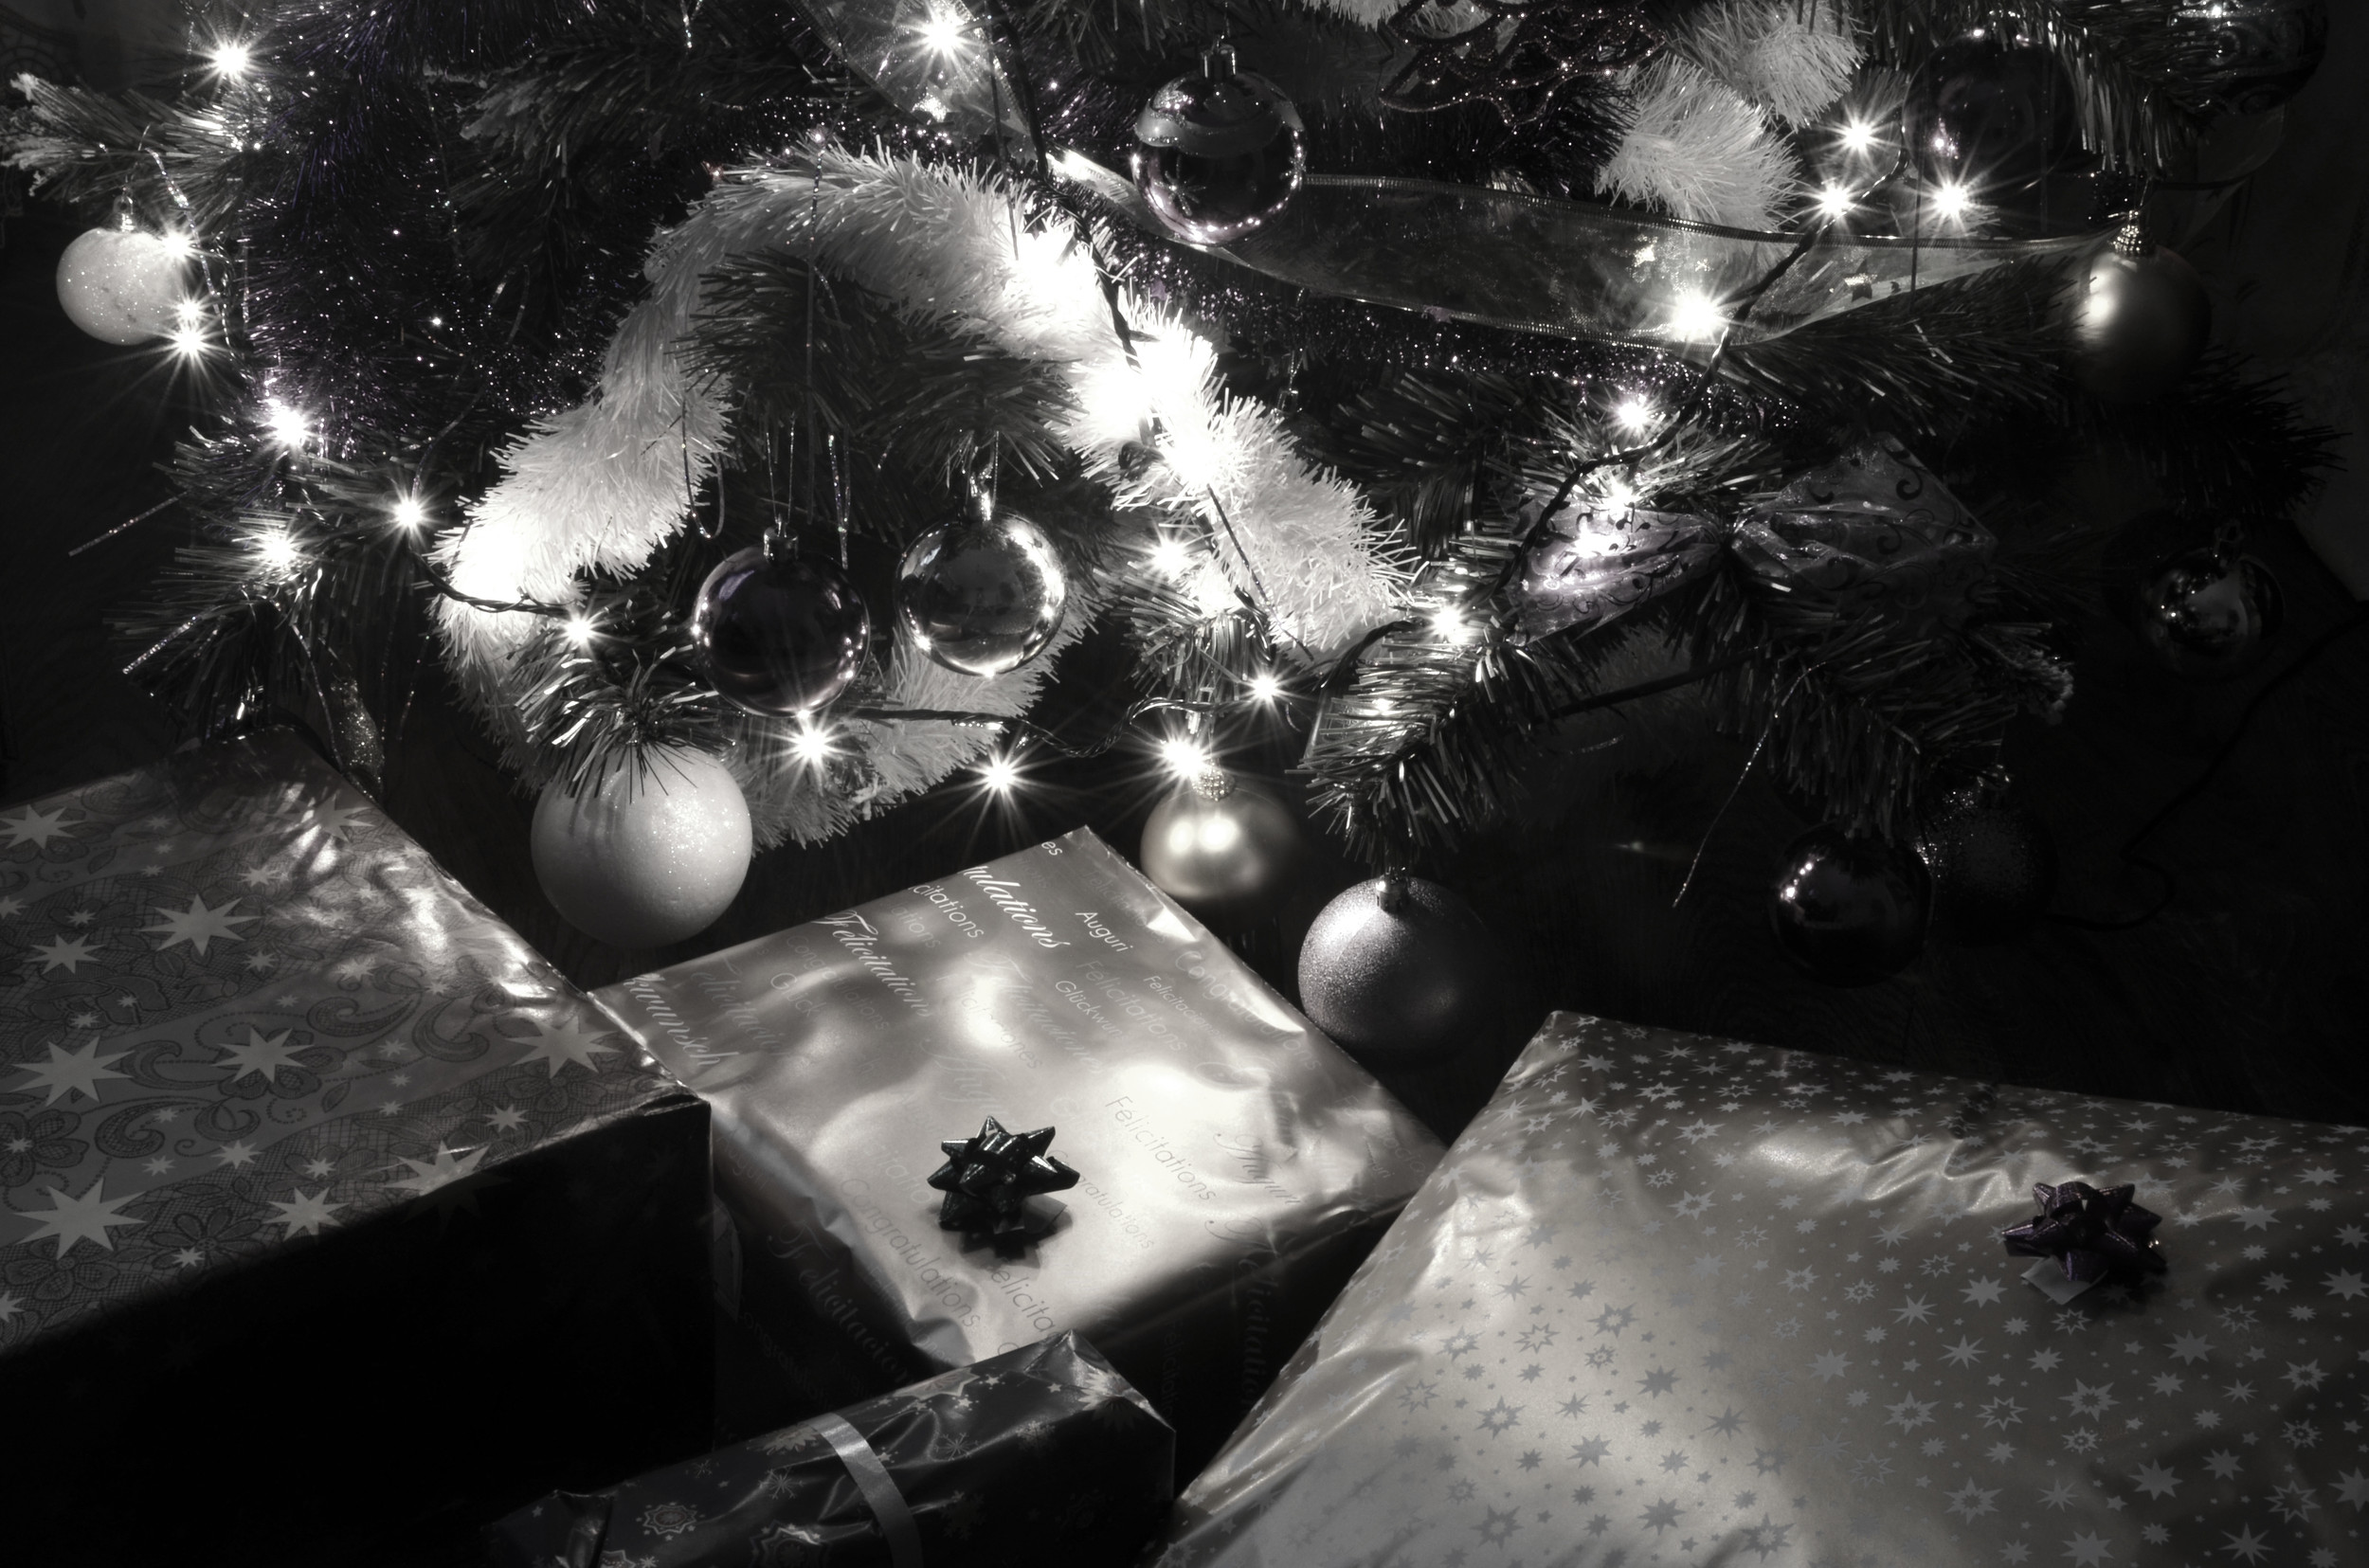 Finding meaningful gifts without breaking the bank